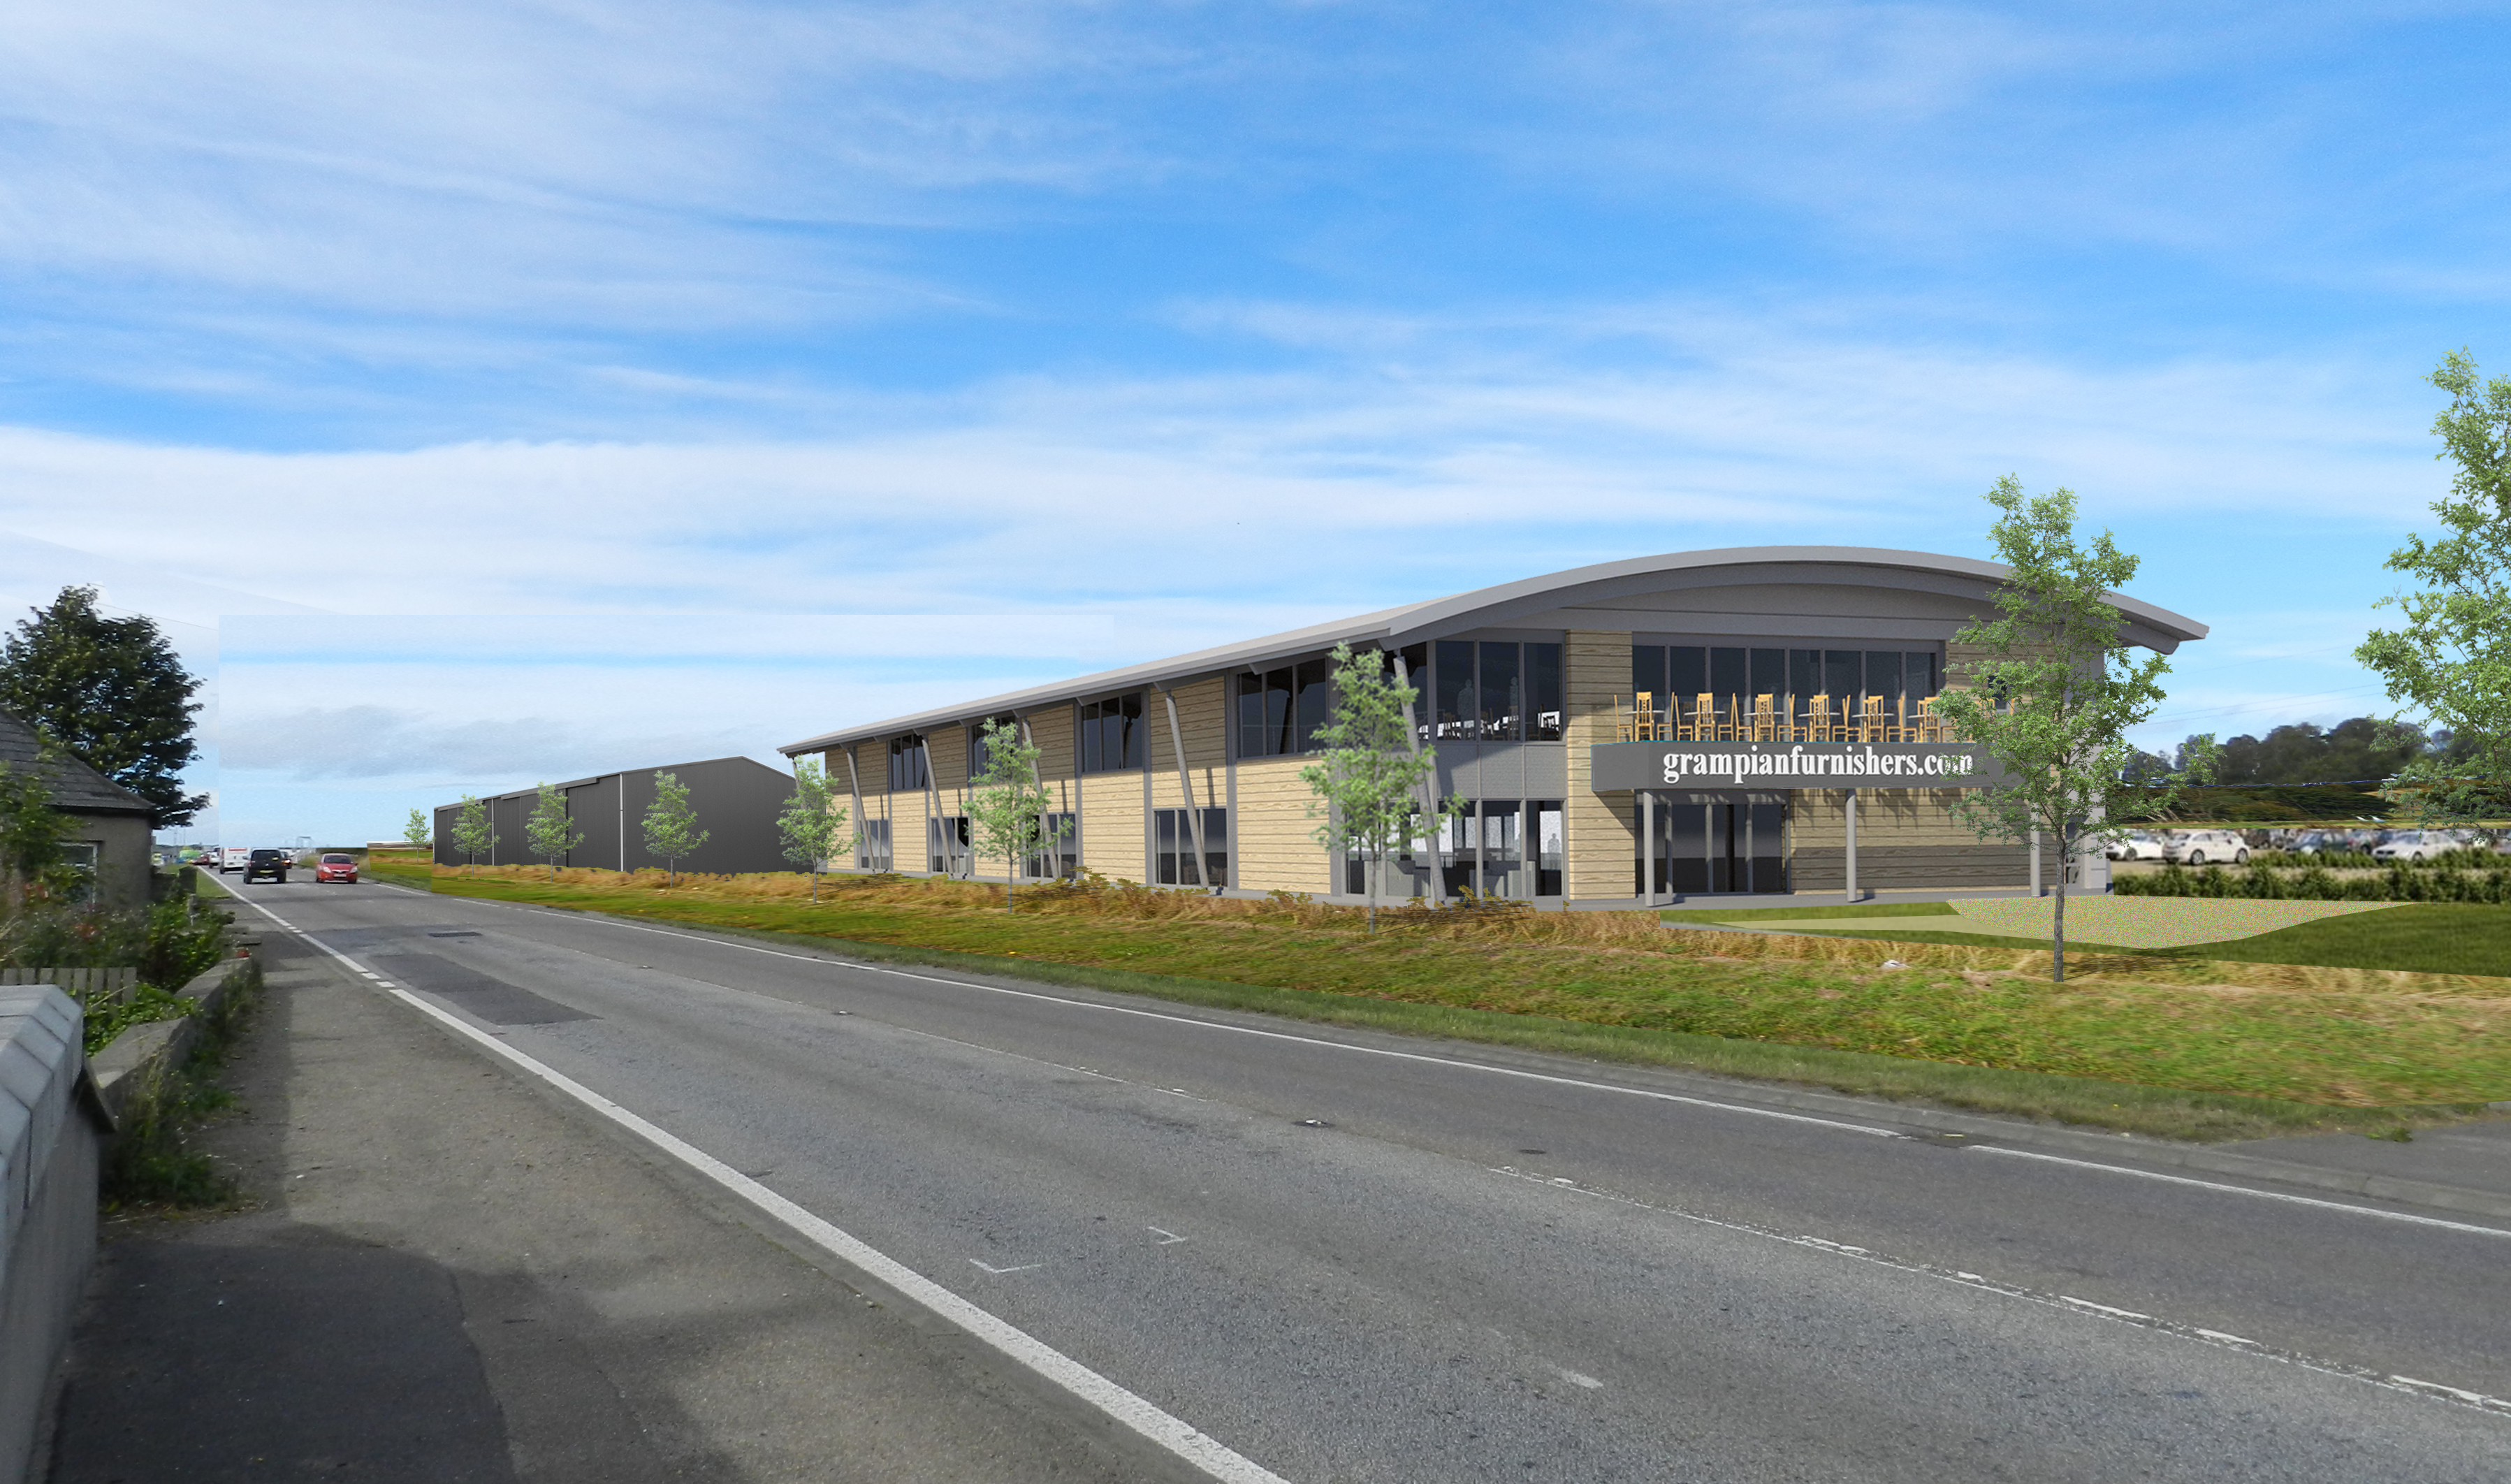 The new showroom could create up to 50 new jobs.